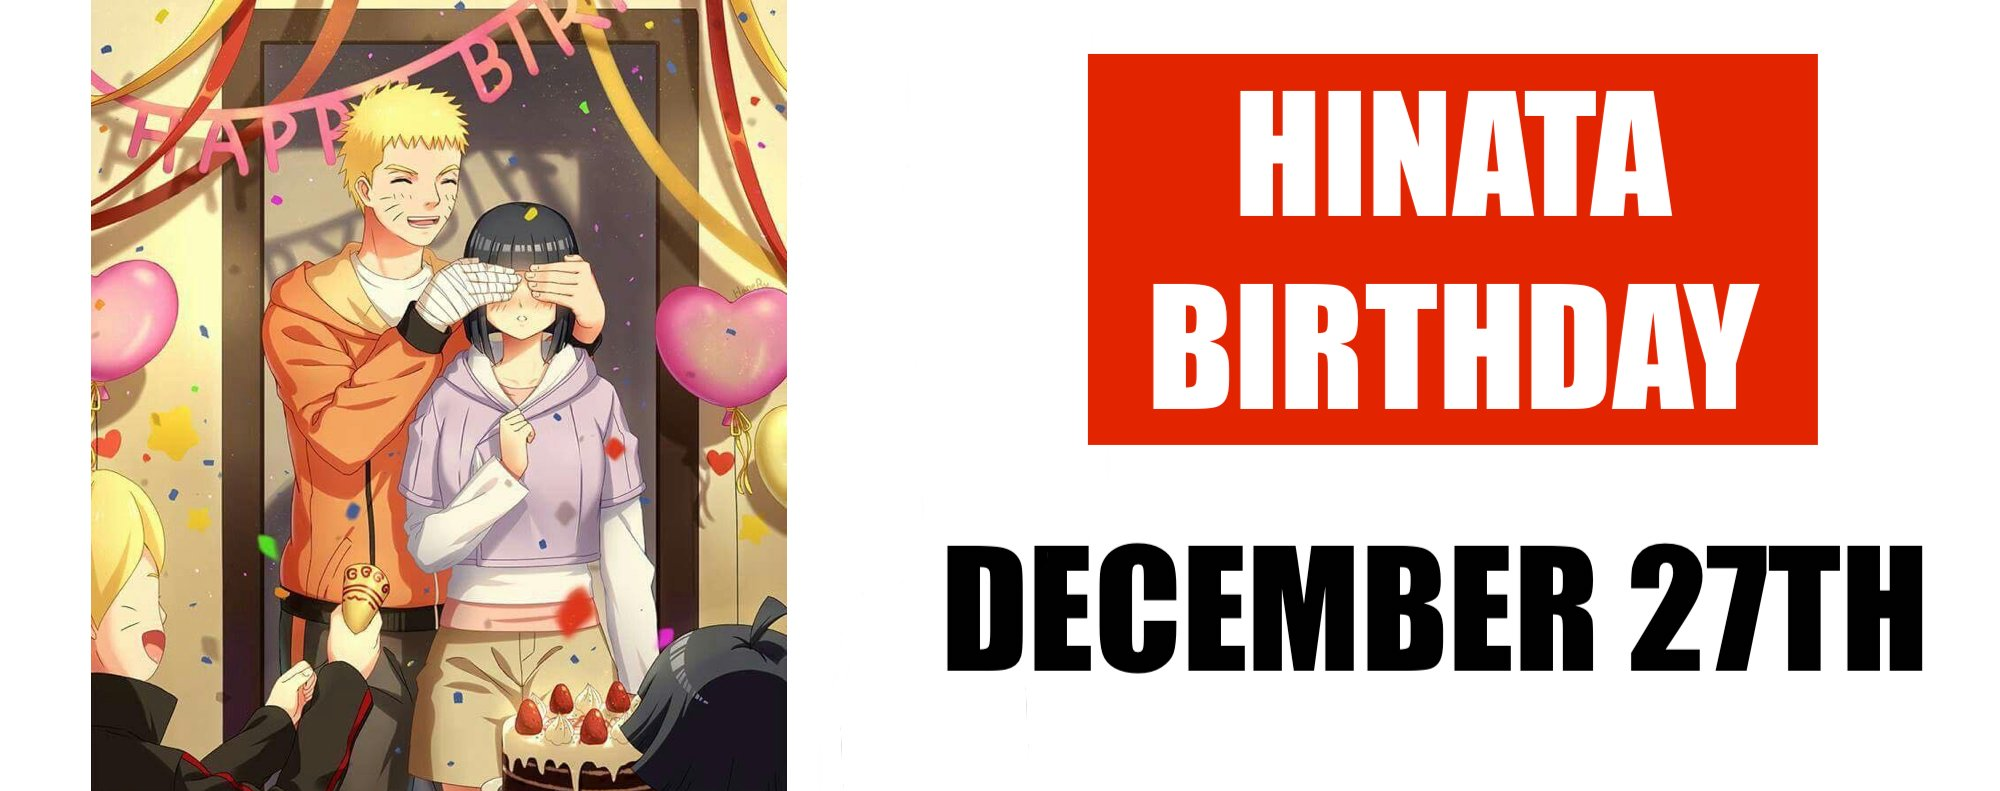 When is Hinata's Birthday